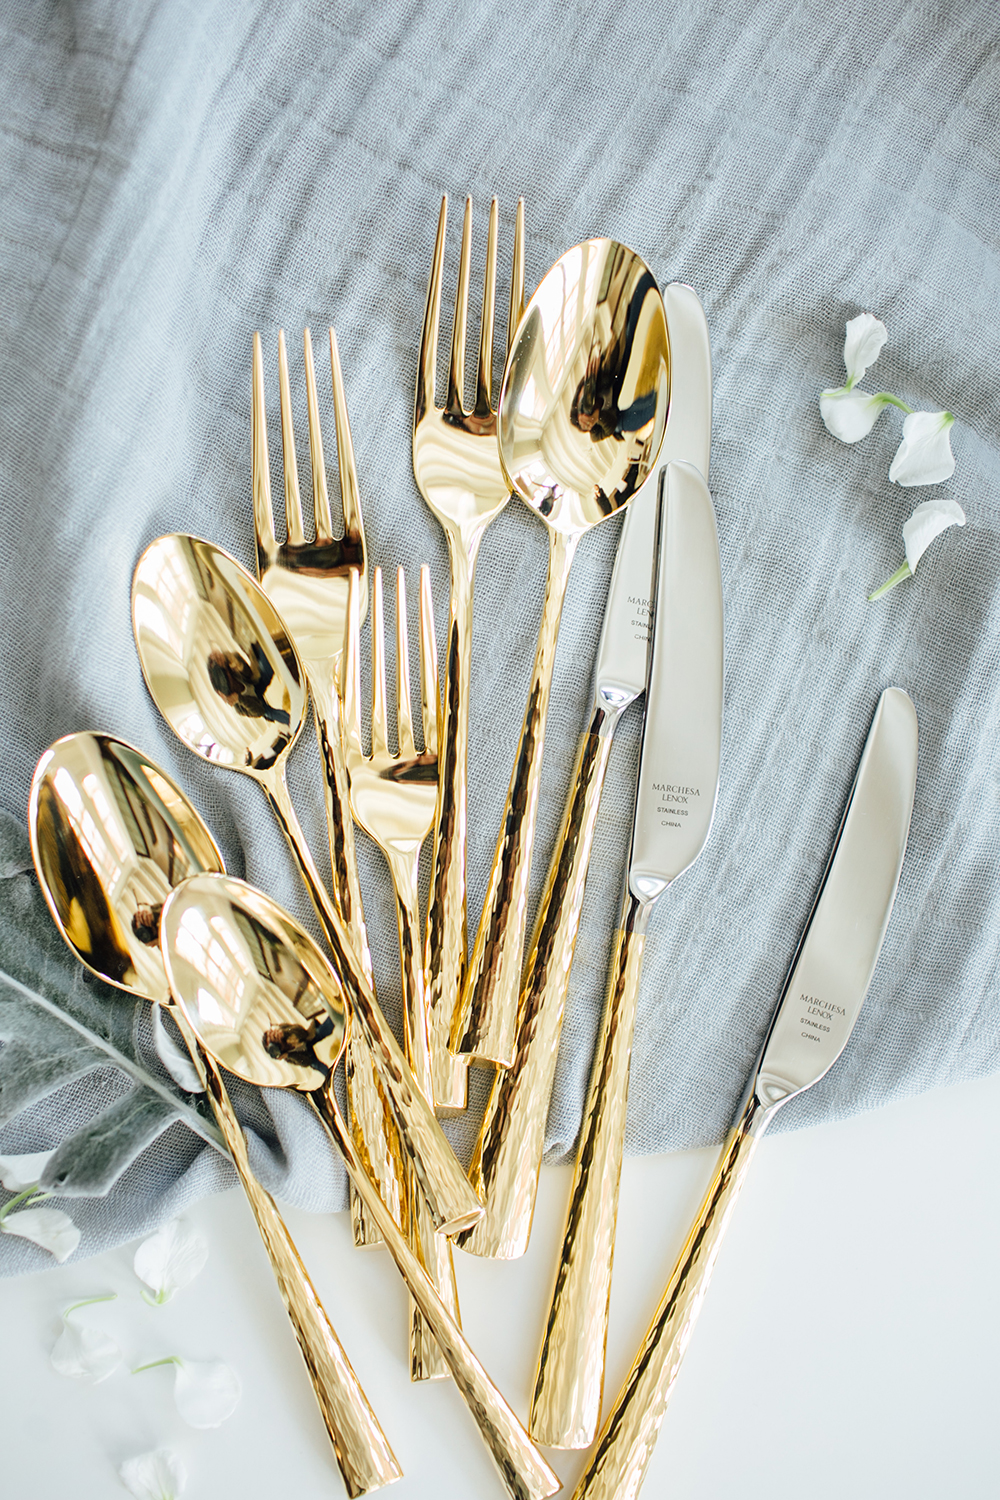 Lenox Marchesa flatware - http://ruffledblog.com/design-your-first-home-together-with-bloomingdales-registry